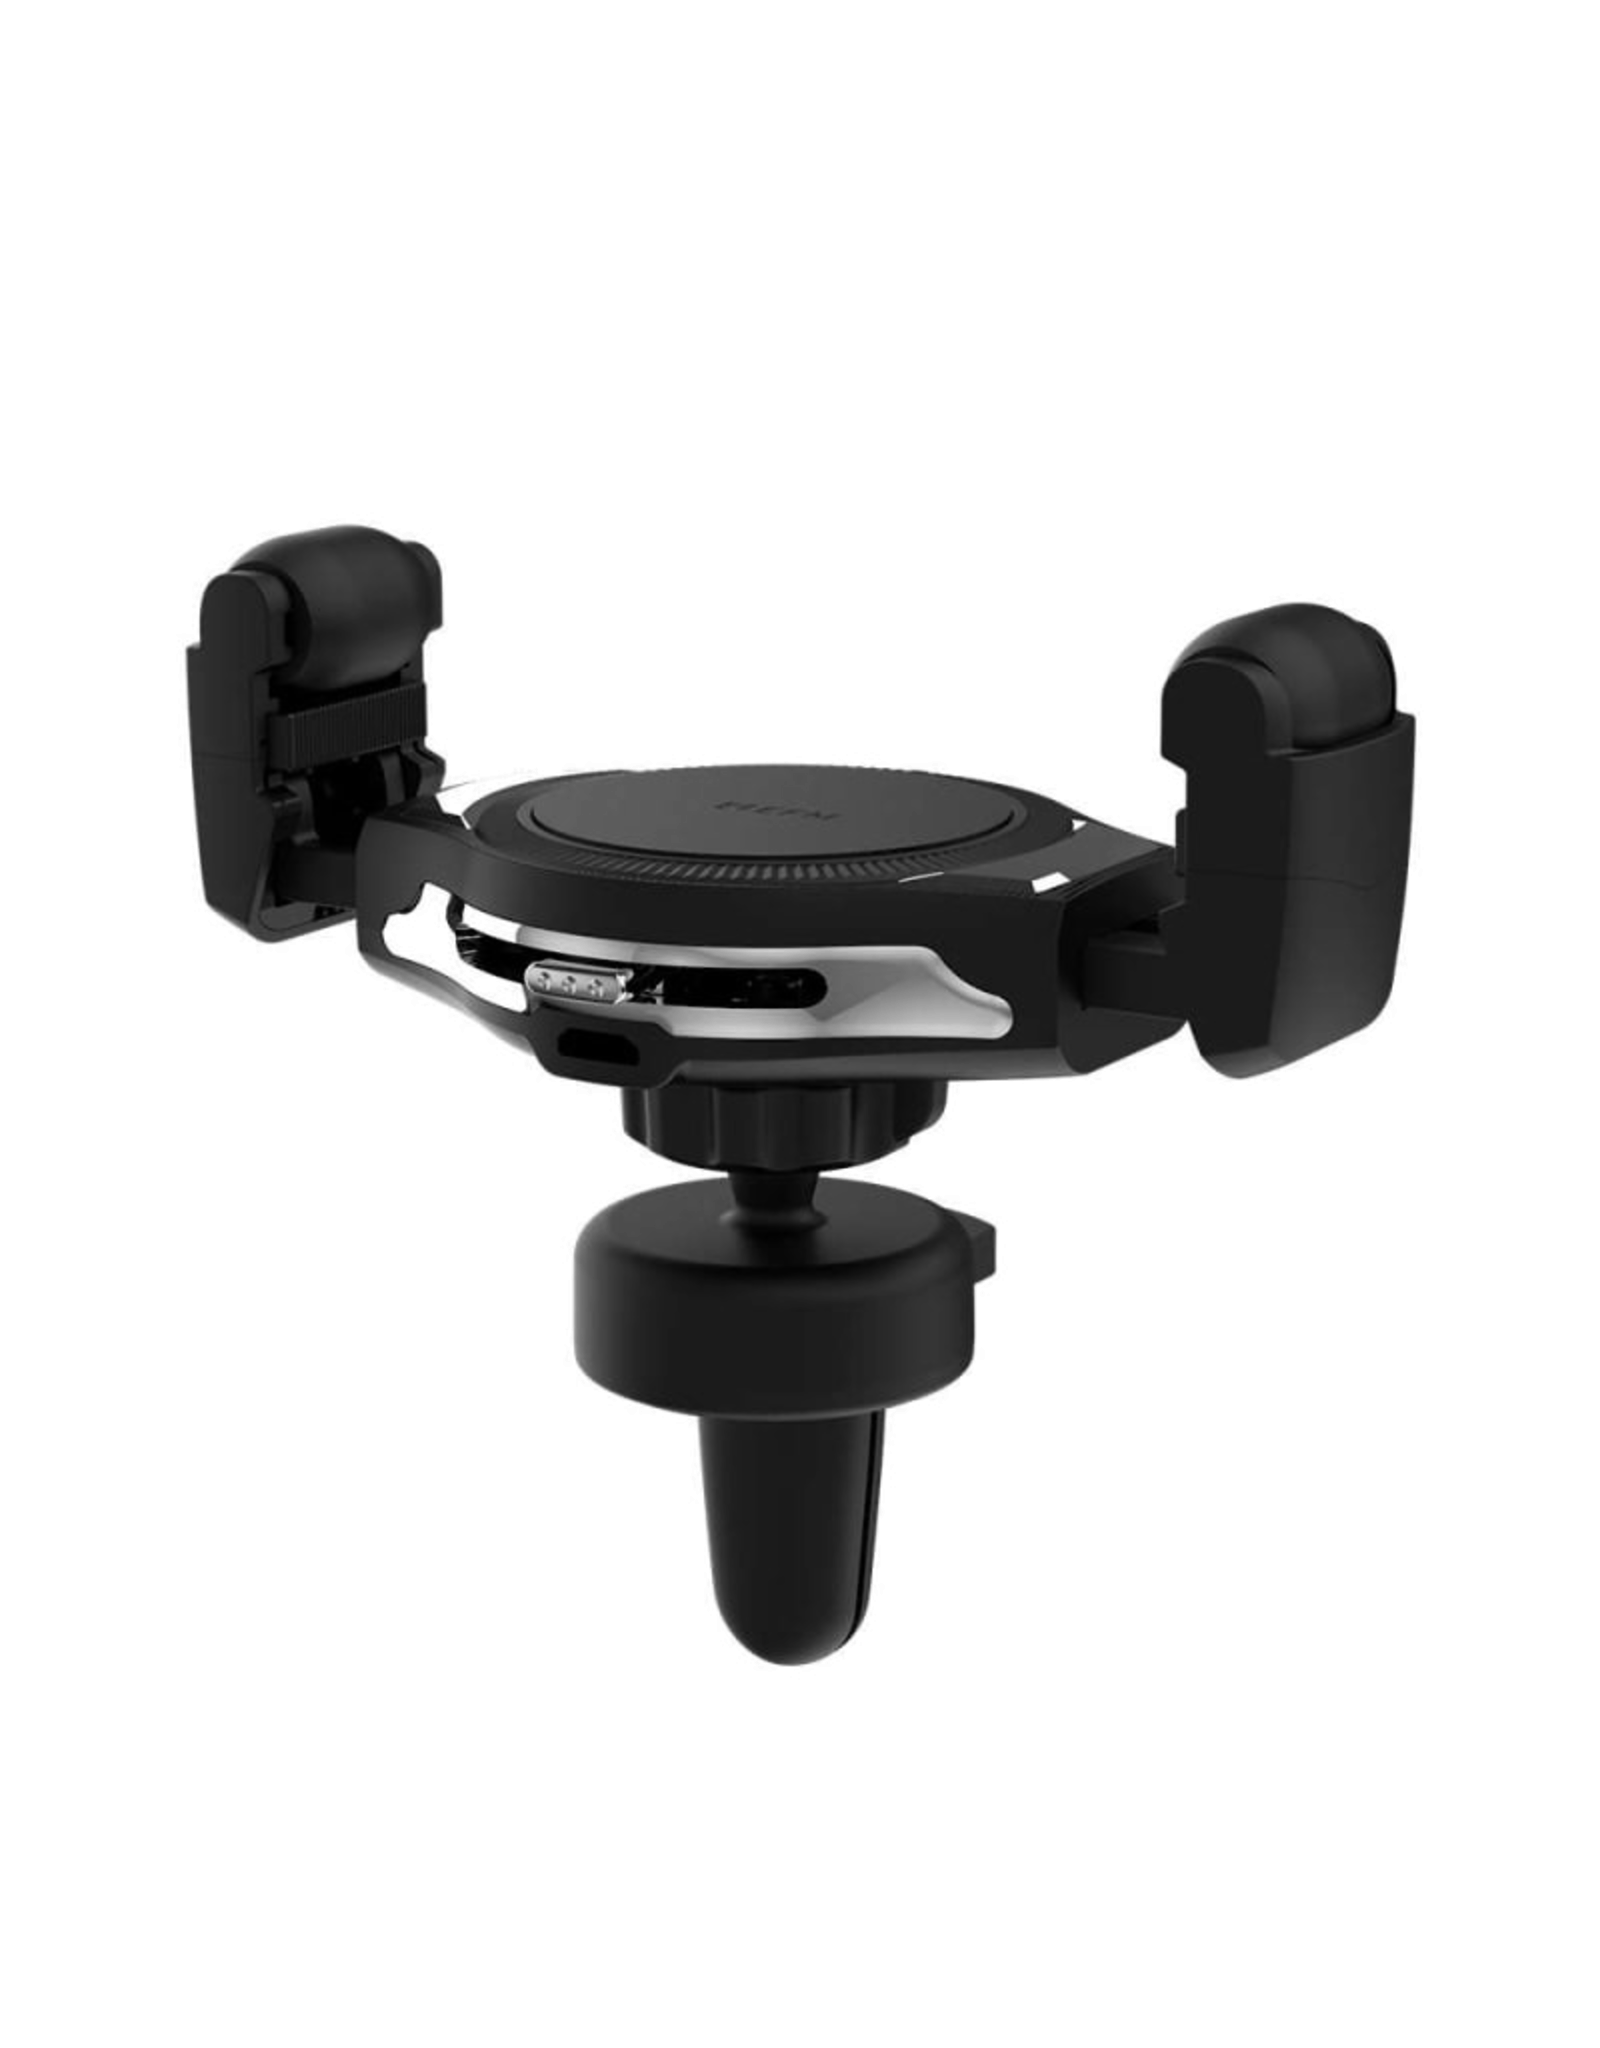 EFM EFM 15W Wireless Vent Mount Charger with Manual Adjustment and 39W Car Charger - Graphite